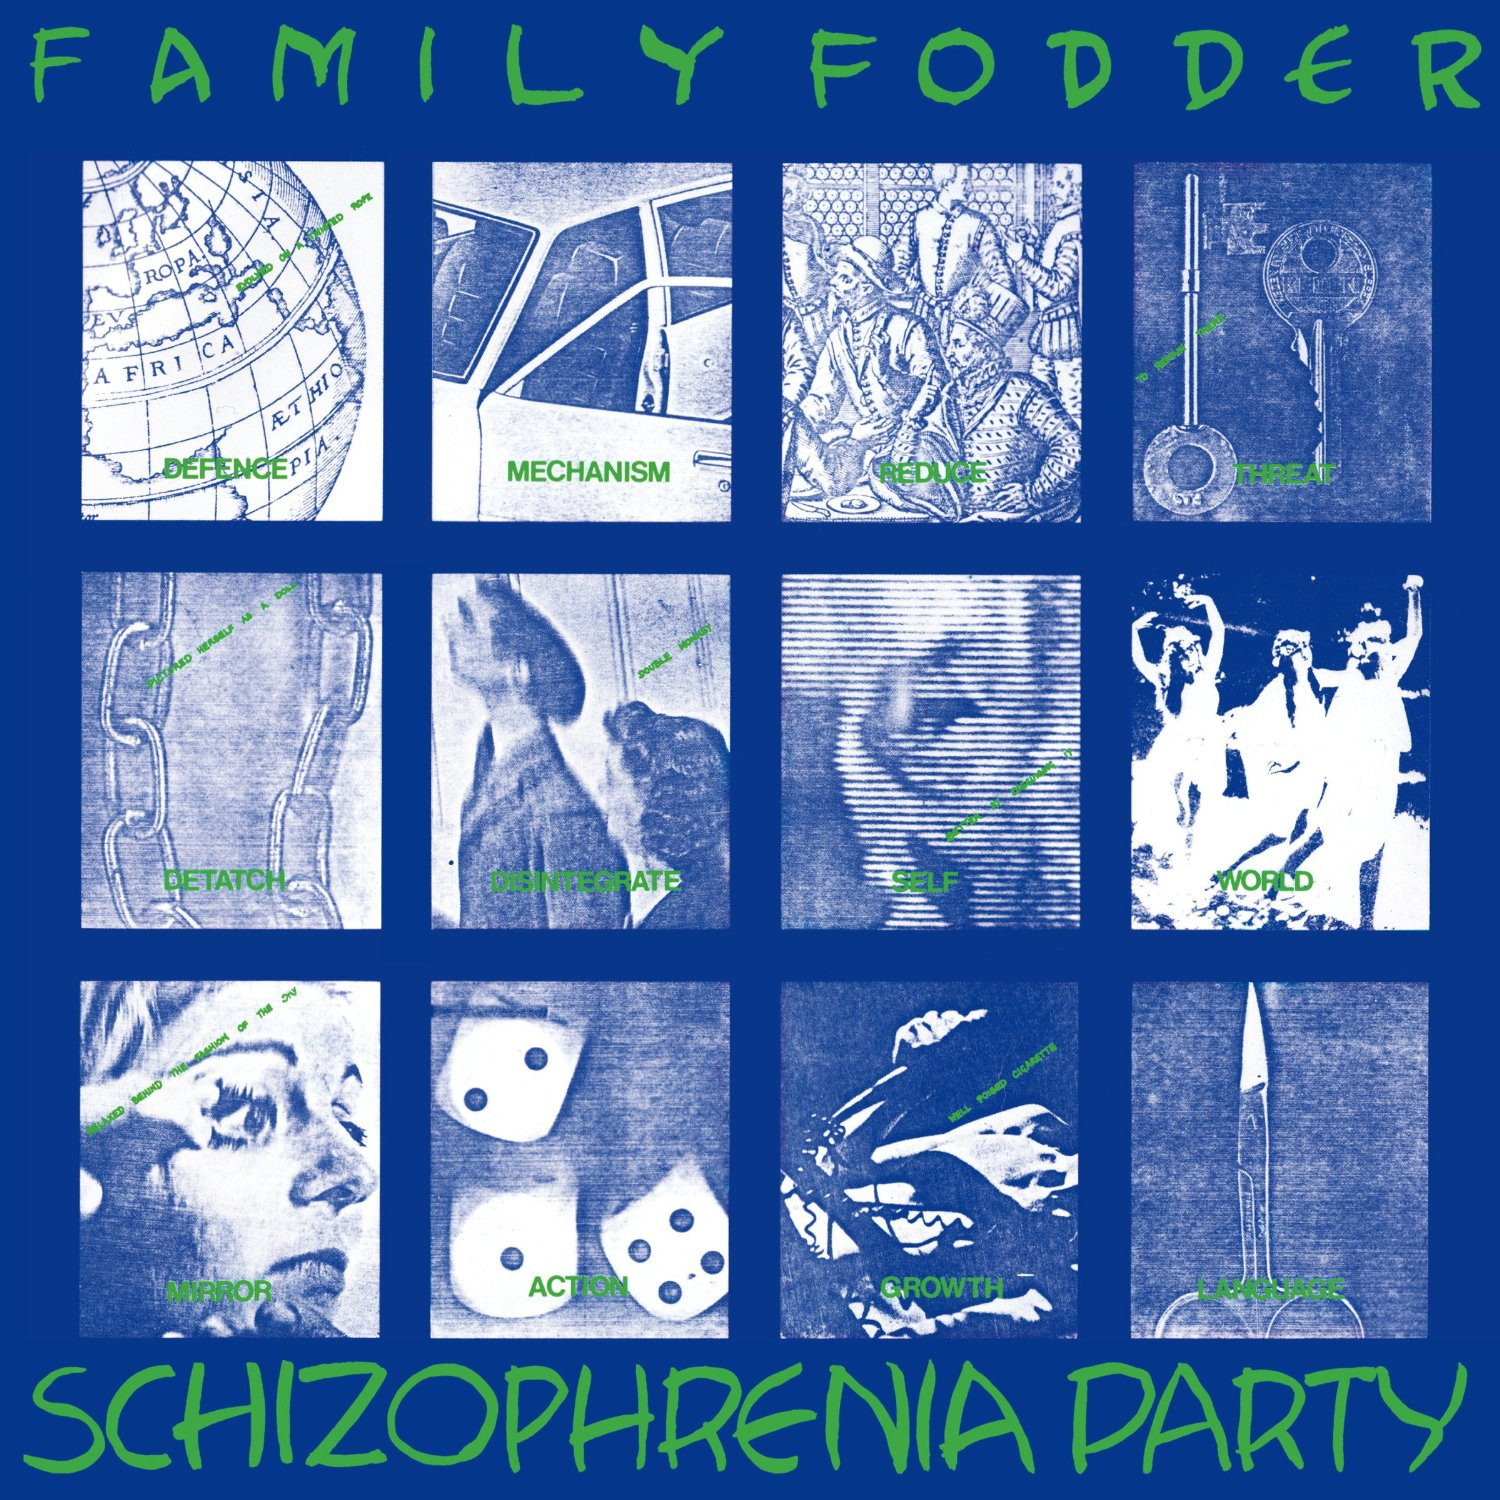 Schizophrenia Party (Director's Cut) / Family Fodderのジャケット